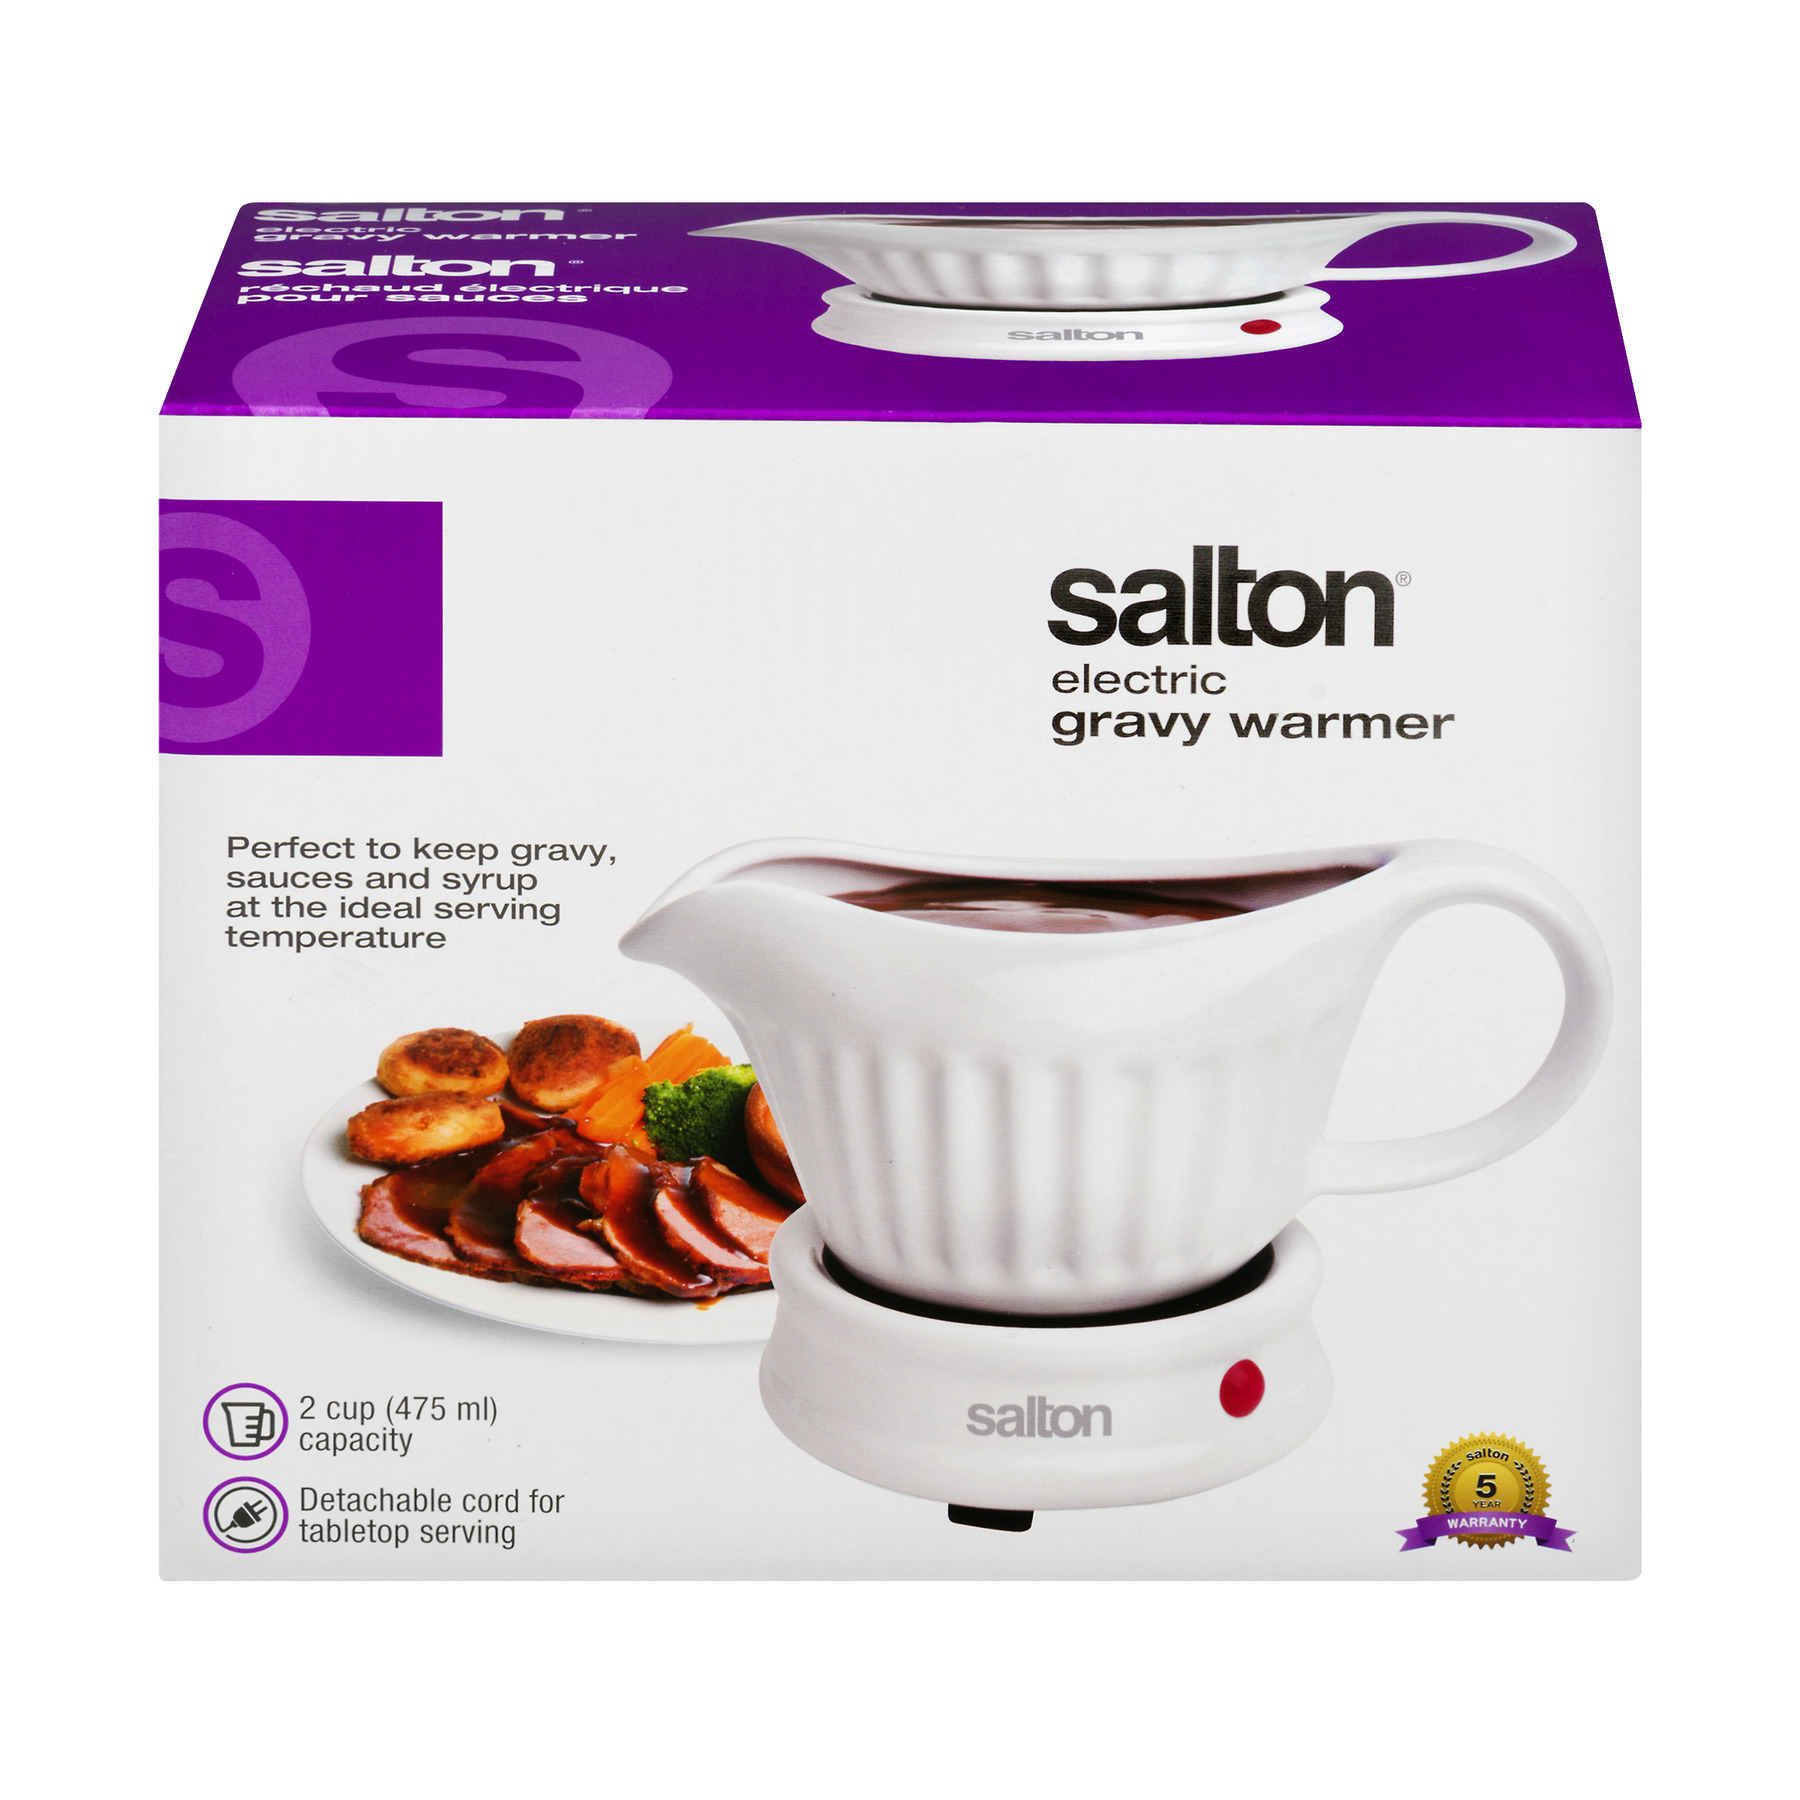 Salton Electric Gravy Warmer, 1.0 CT